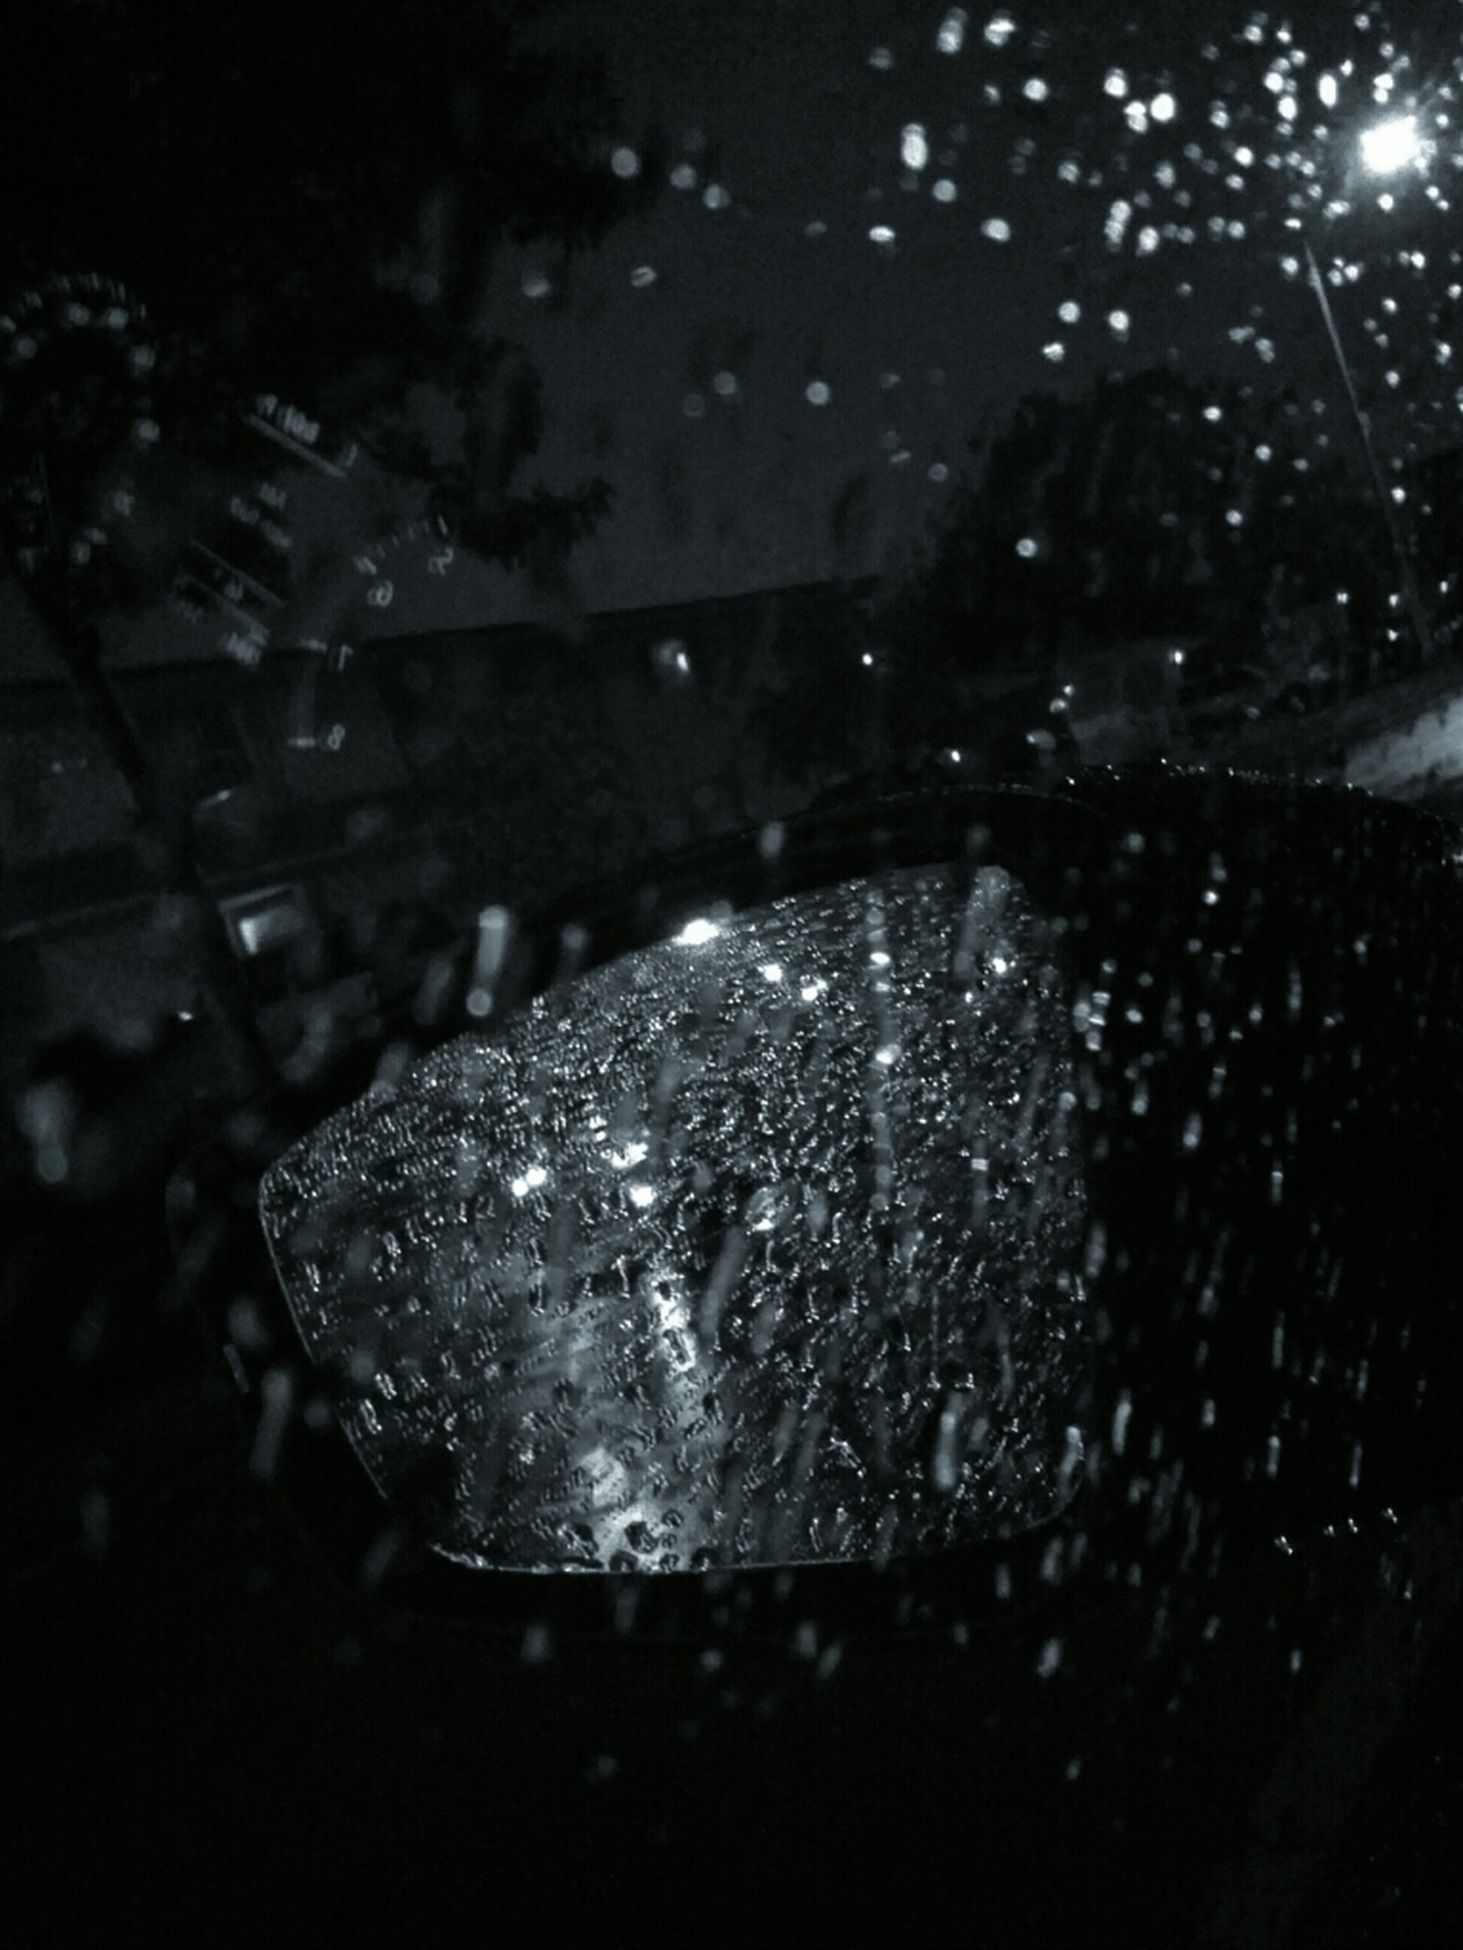 night, water, drop, wet, close-up, rain, illuminated, season, focus on foreground, dark, raindrop, selective focus, nature, indoors, weather, no people, monsoon, reflection, high angle view